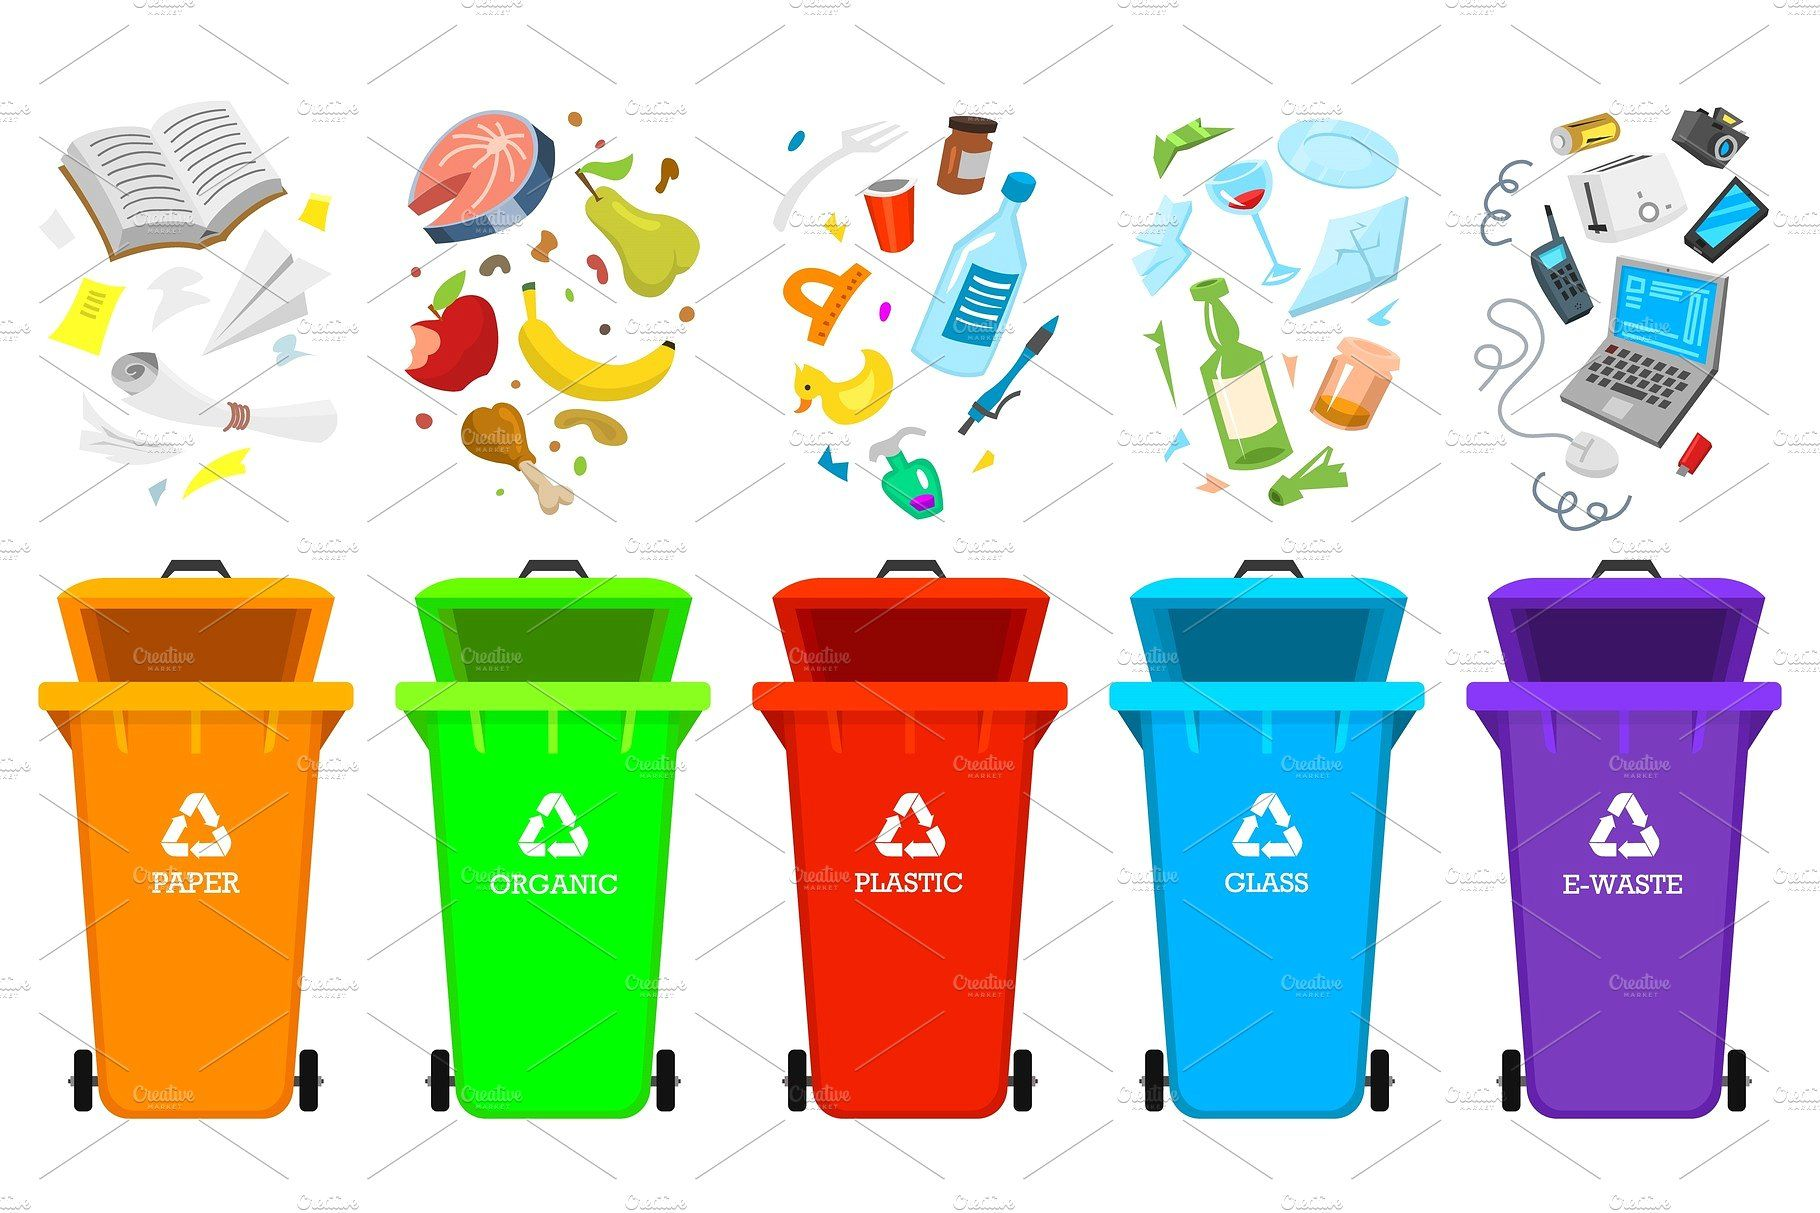 Recycling Garbage Elements Bag Or Containers Or Cans For